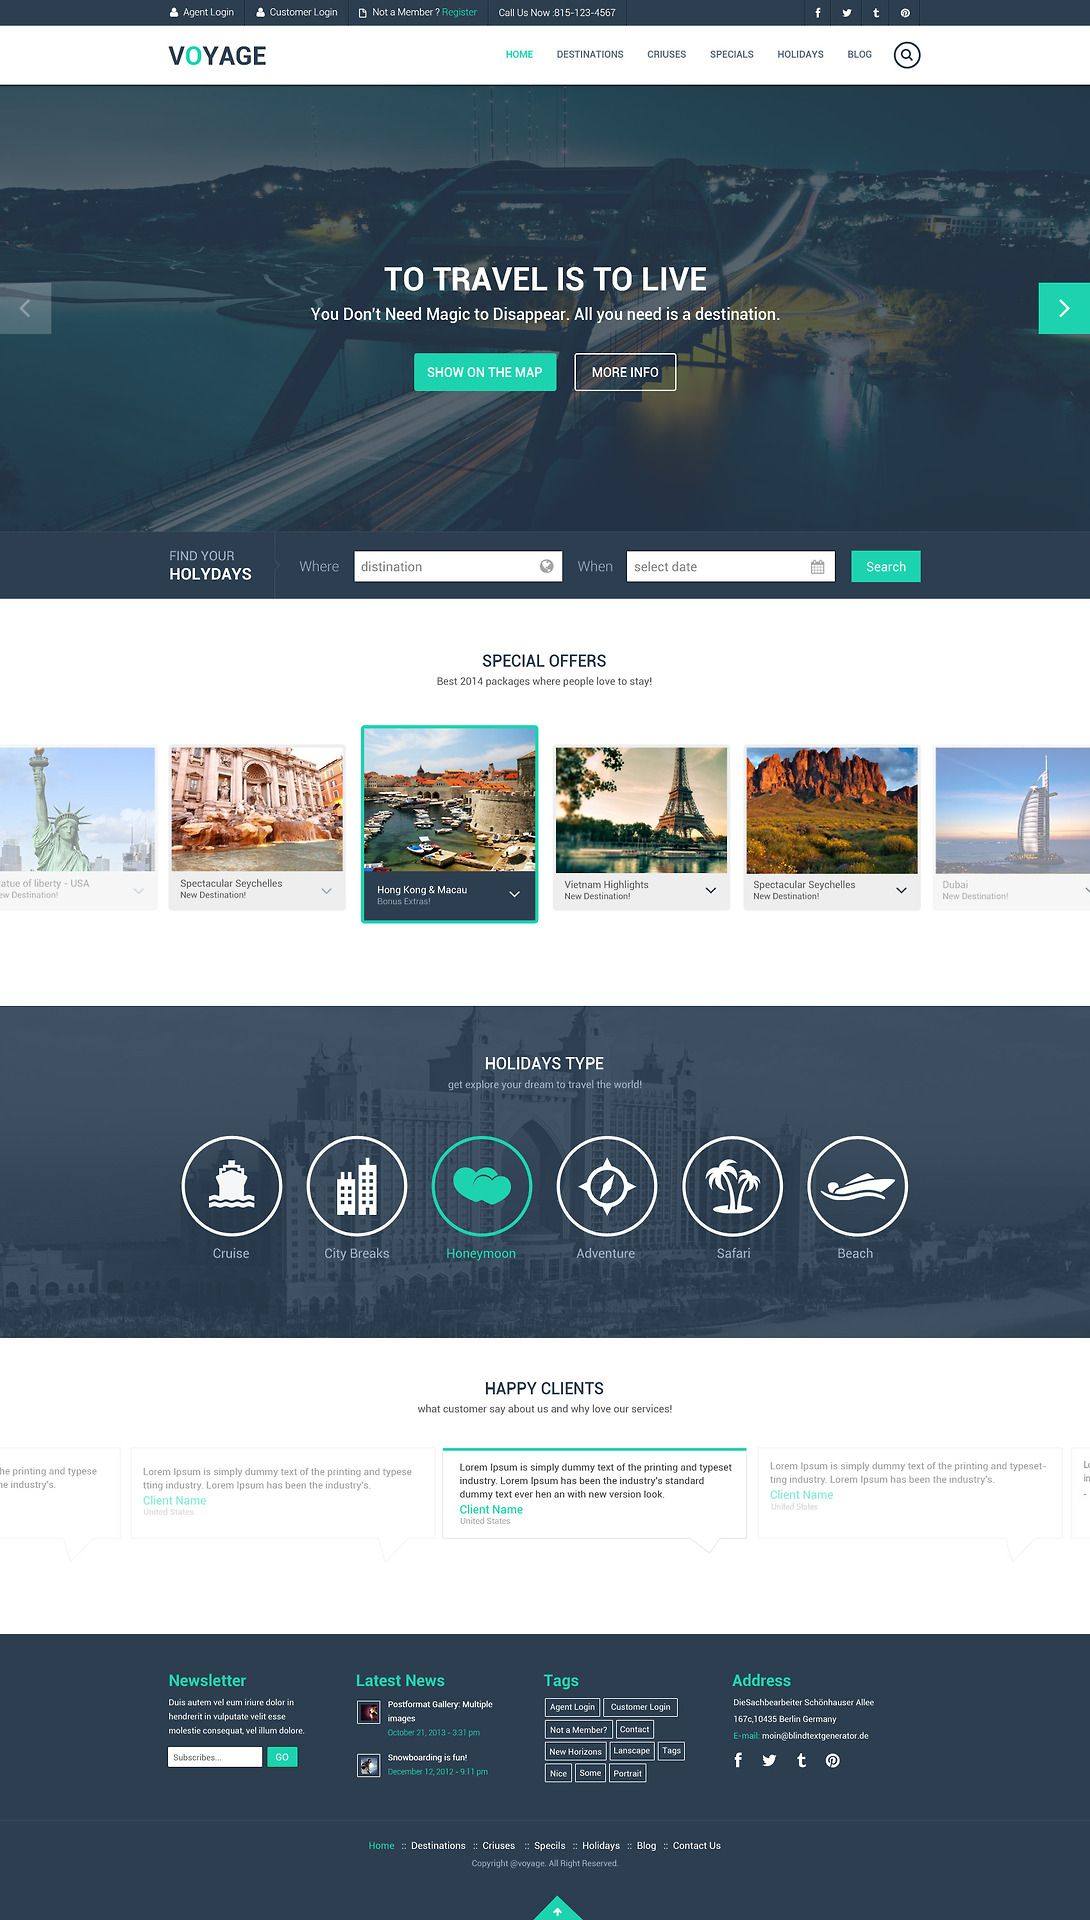 Free Travel Website Template PSD | Travel website design ...